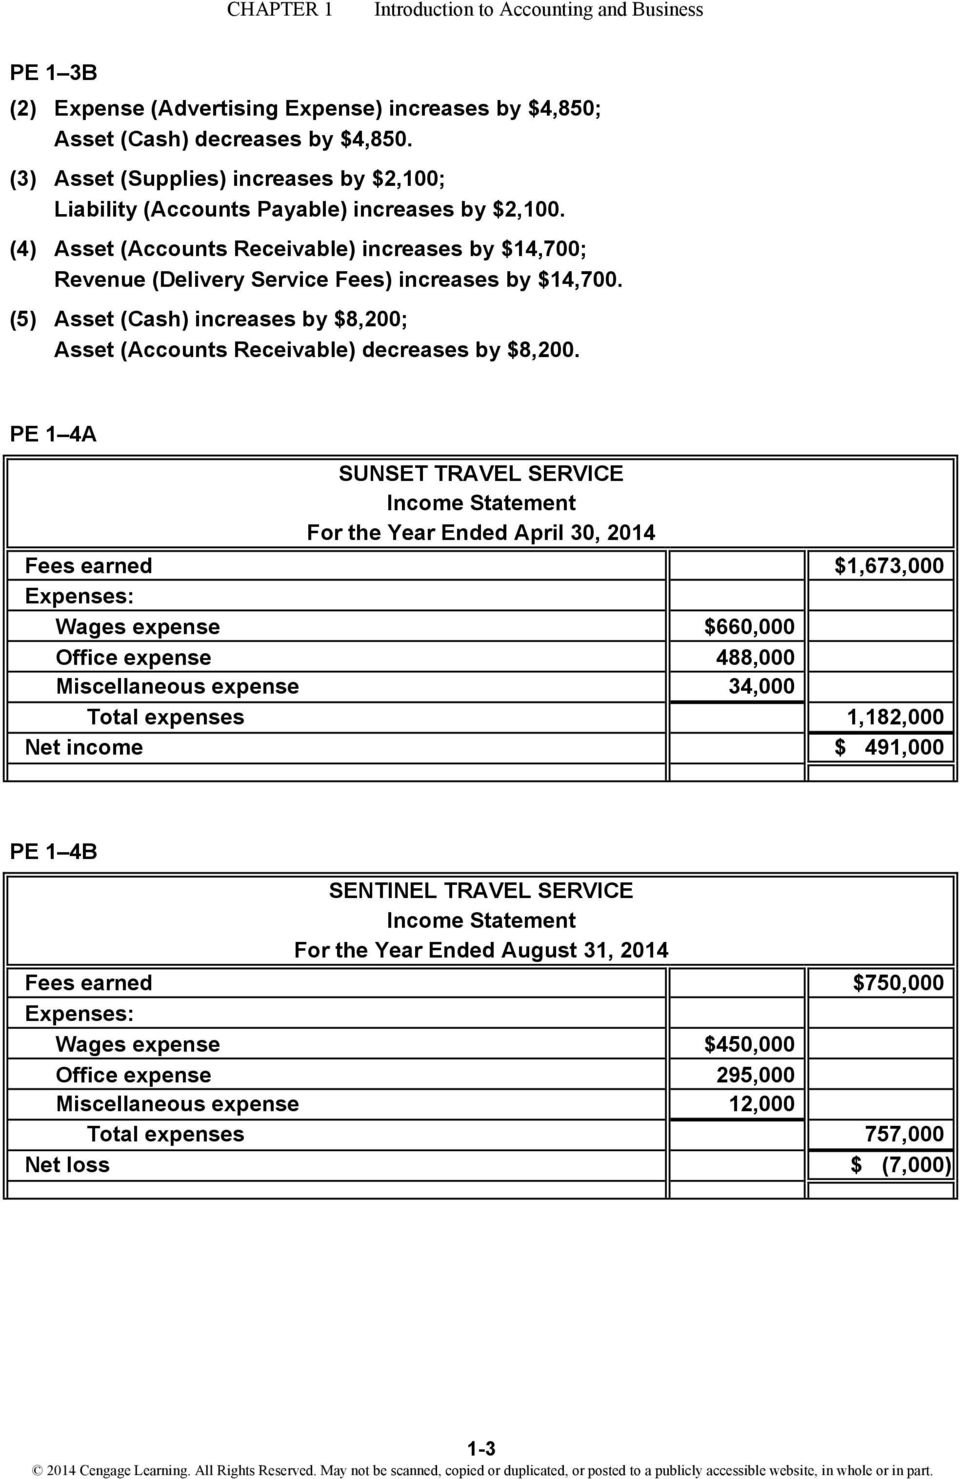 PE 1 4A SUNSET TRAVEL SERVICE Income Statement For the Year Ended April 30, 2014 Fees earned $1,673,000 Expenses: Wages expense $660,000 Office expense 488,000 Miscellaneous expense 34,000 Total